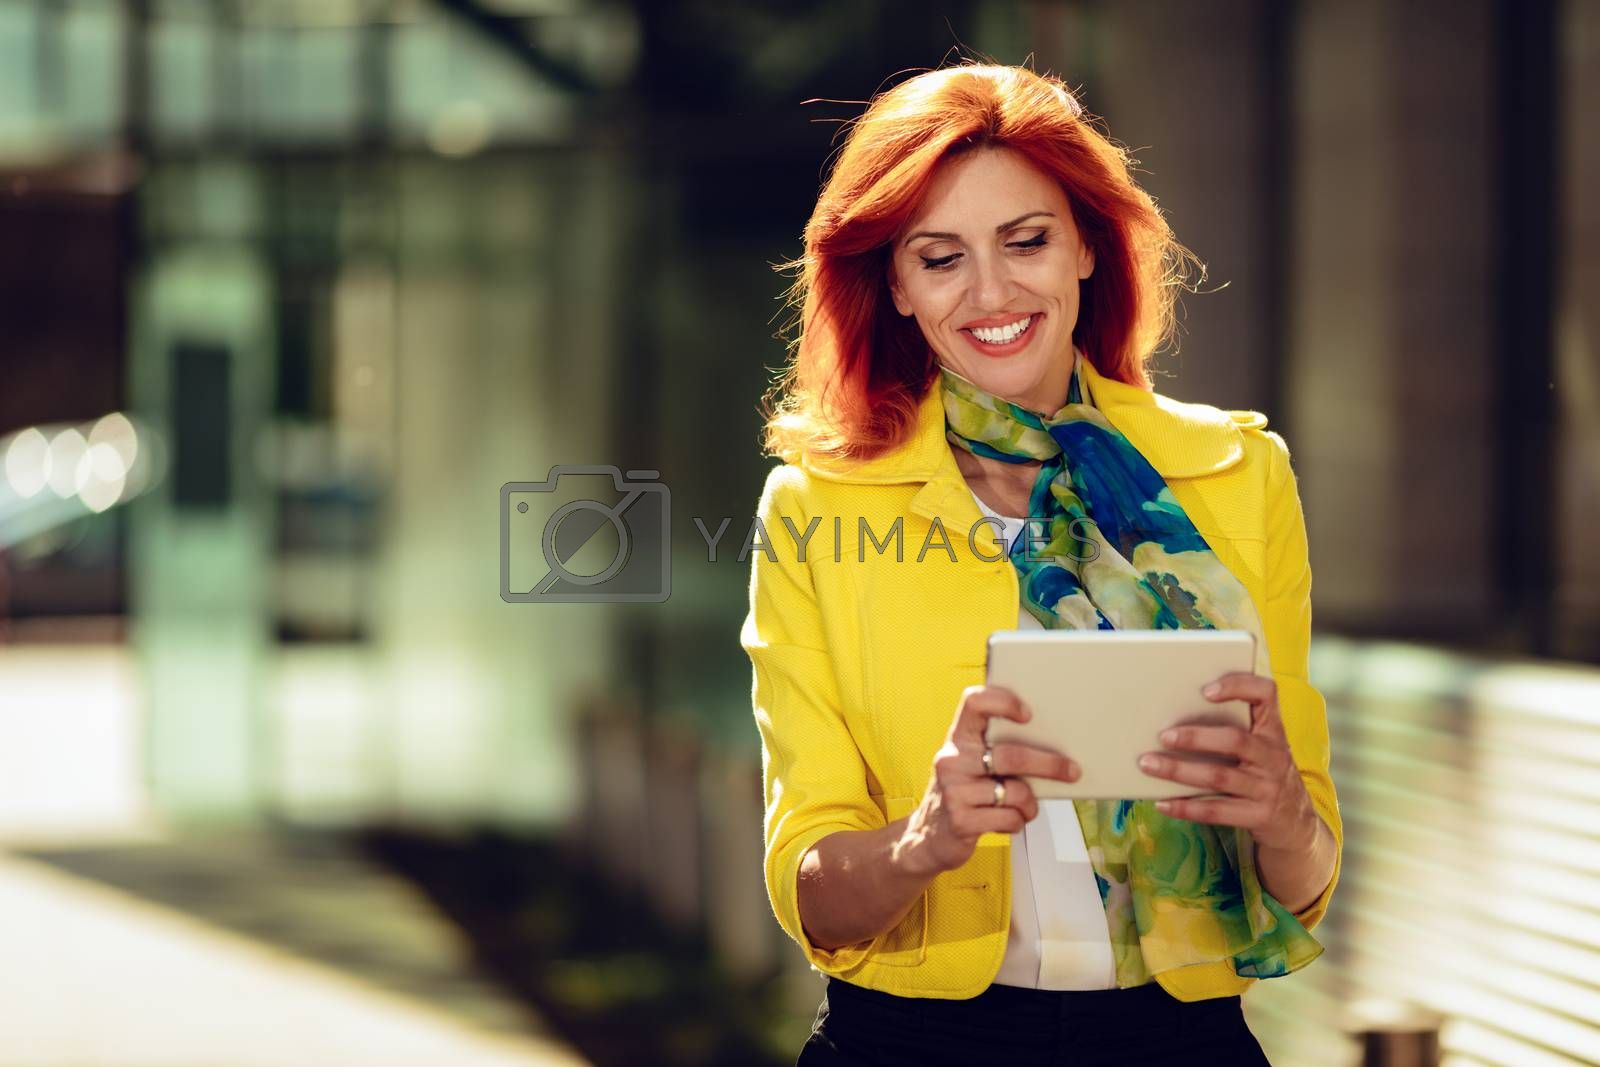 Smiling successful businesswoman using digital tablet in office district.